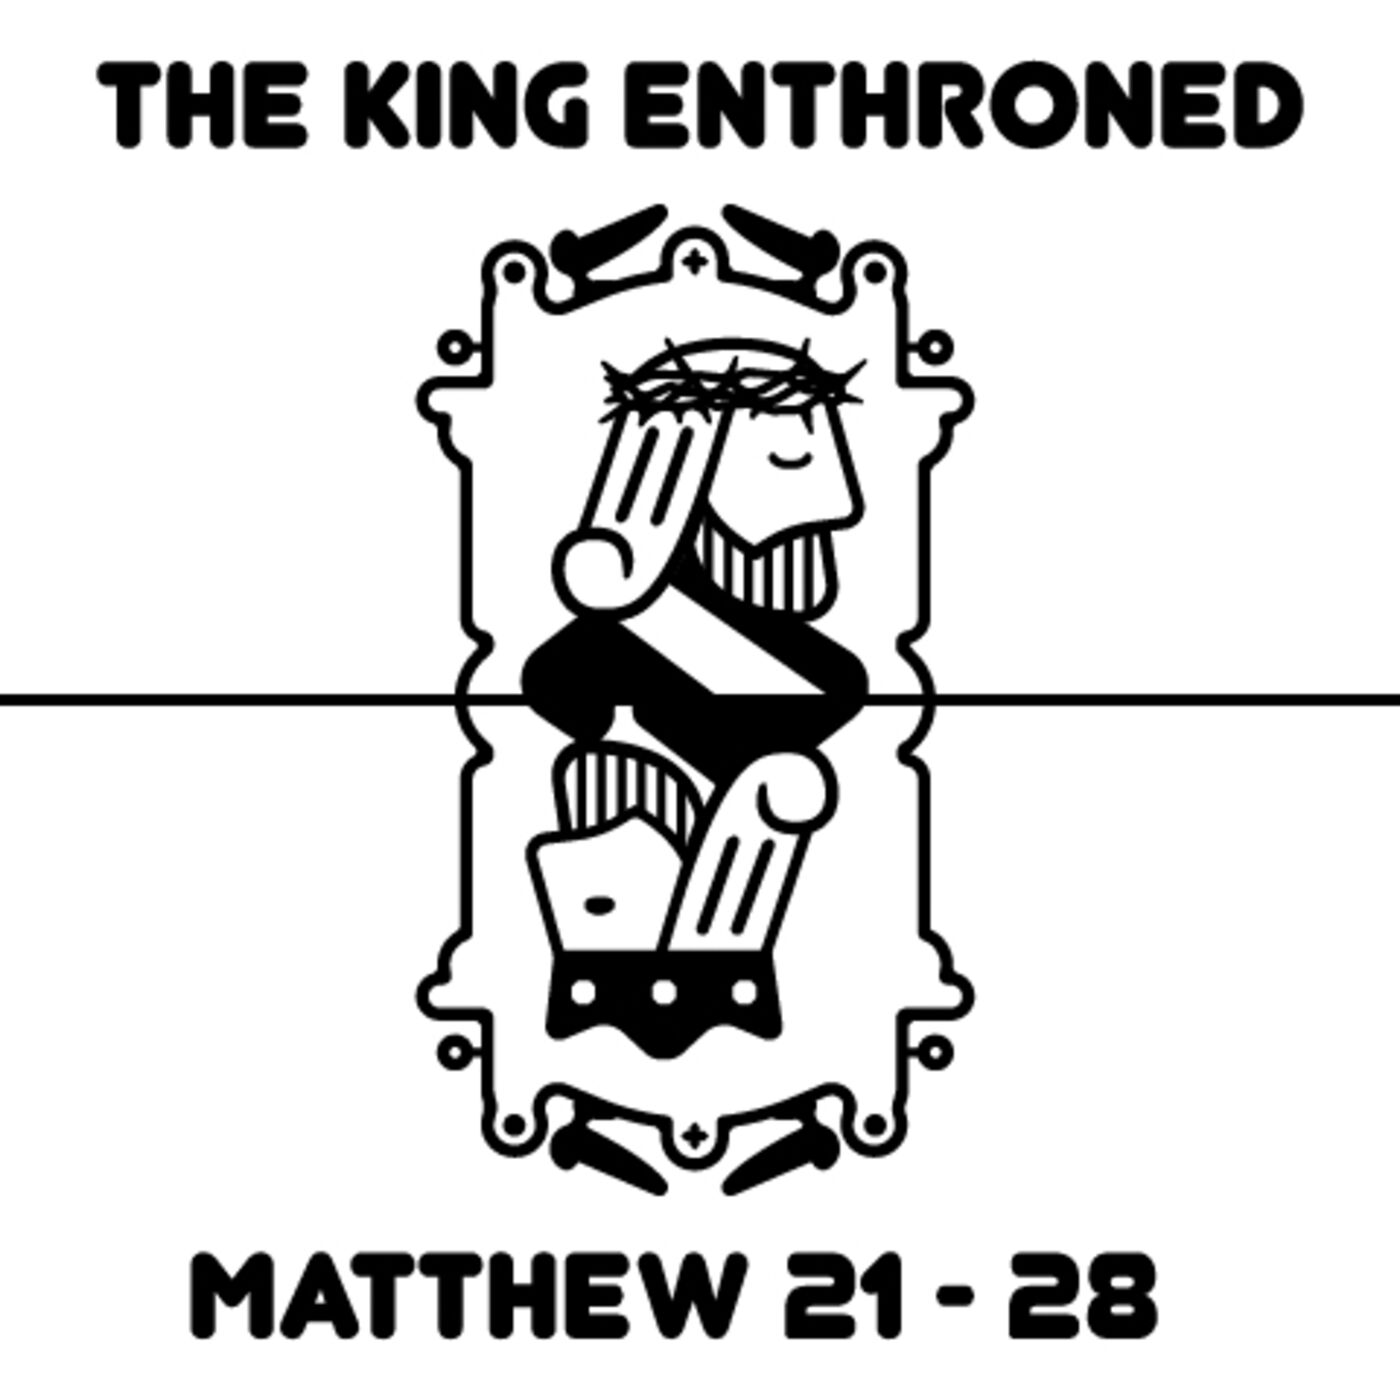 Matthew: The King's Woes